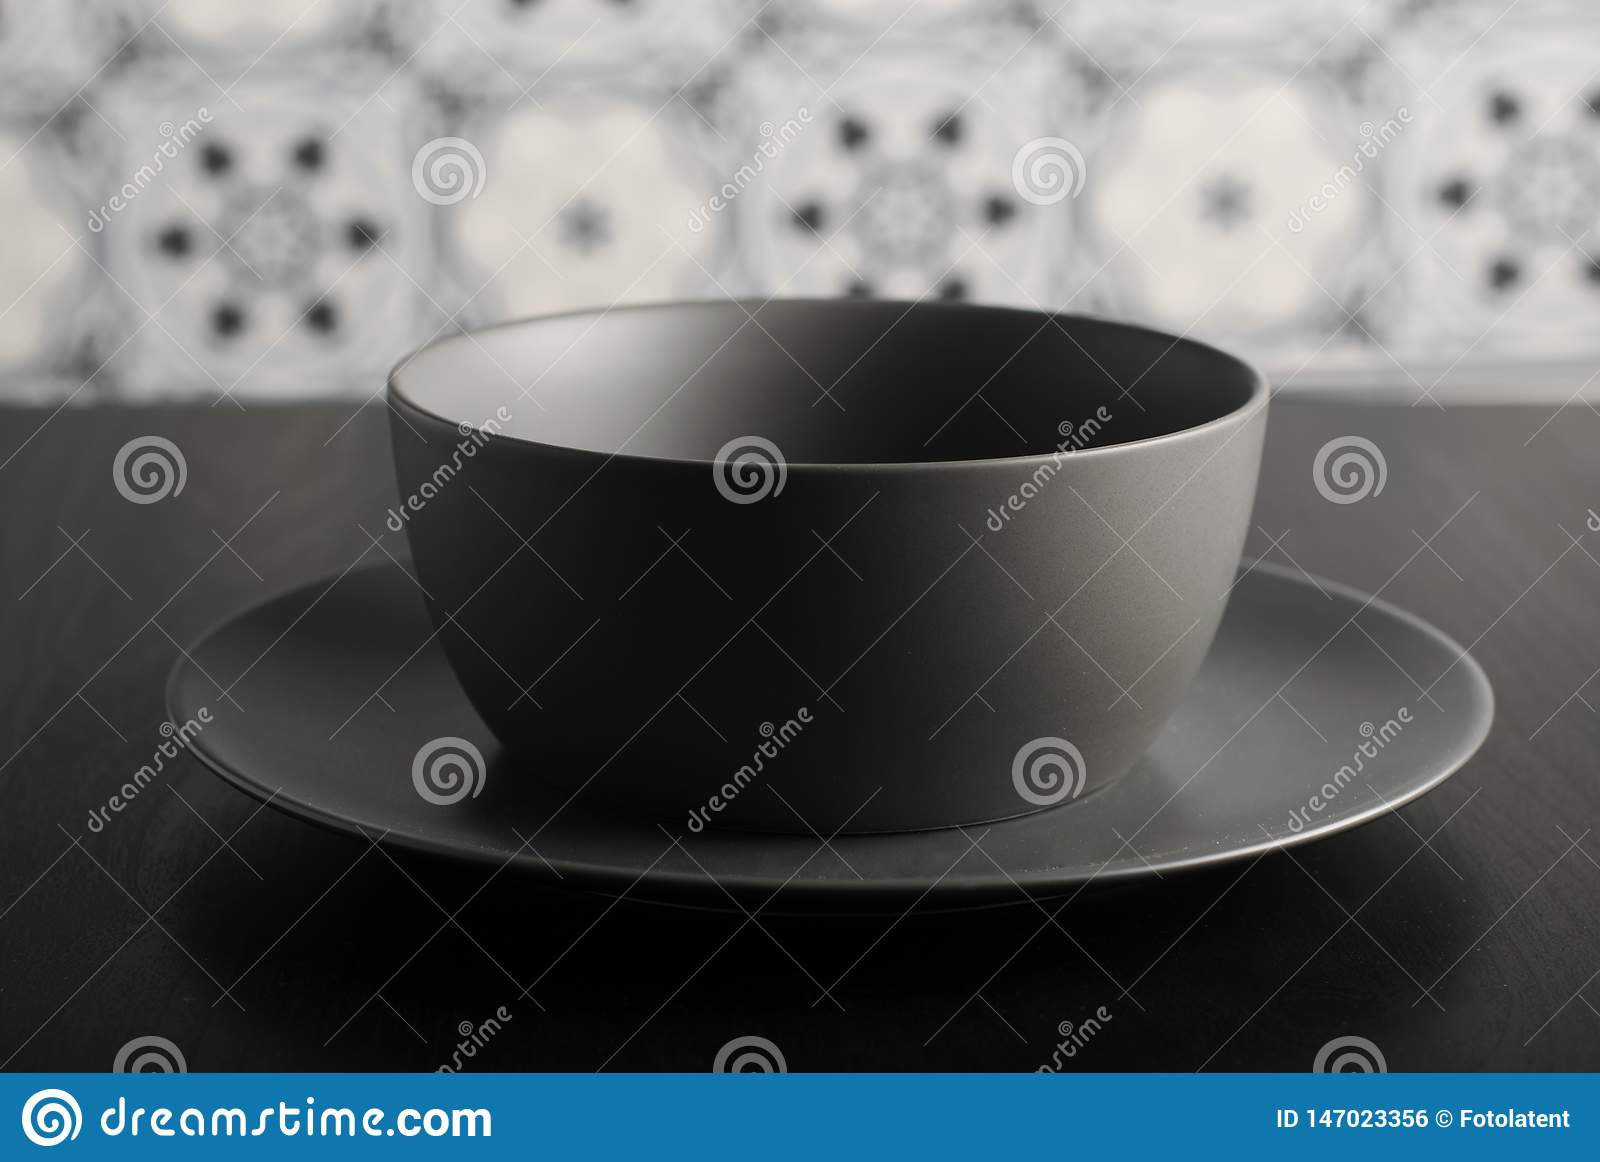 Empty bowl and plate